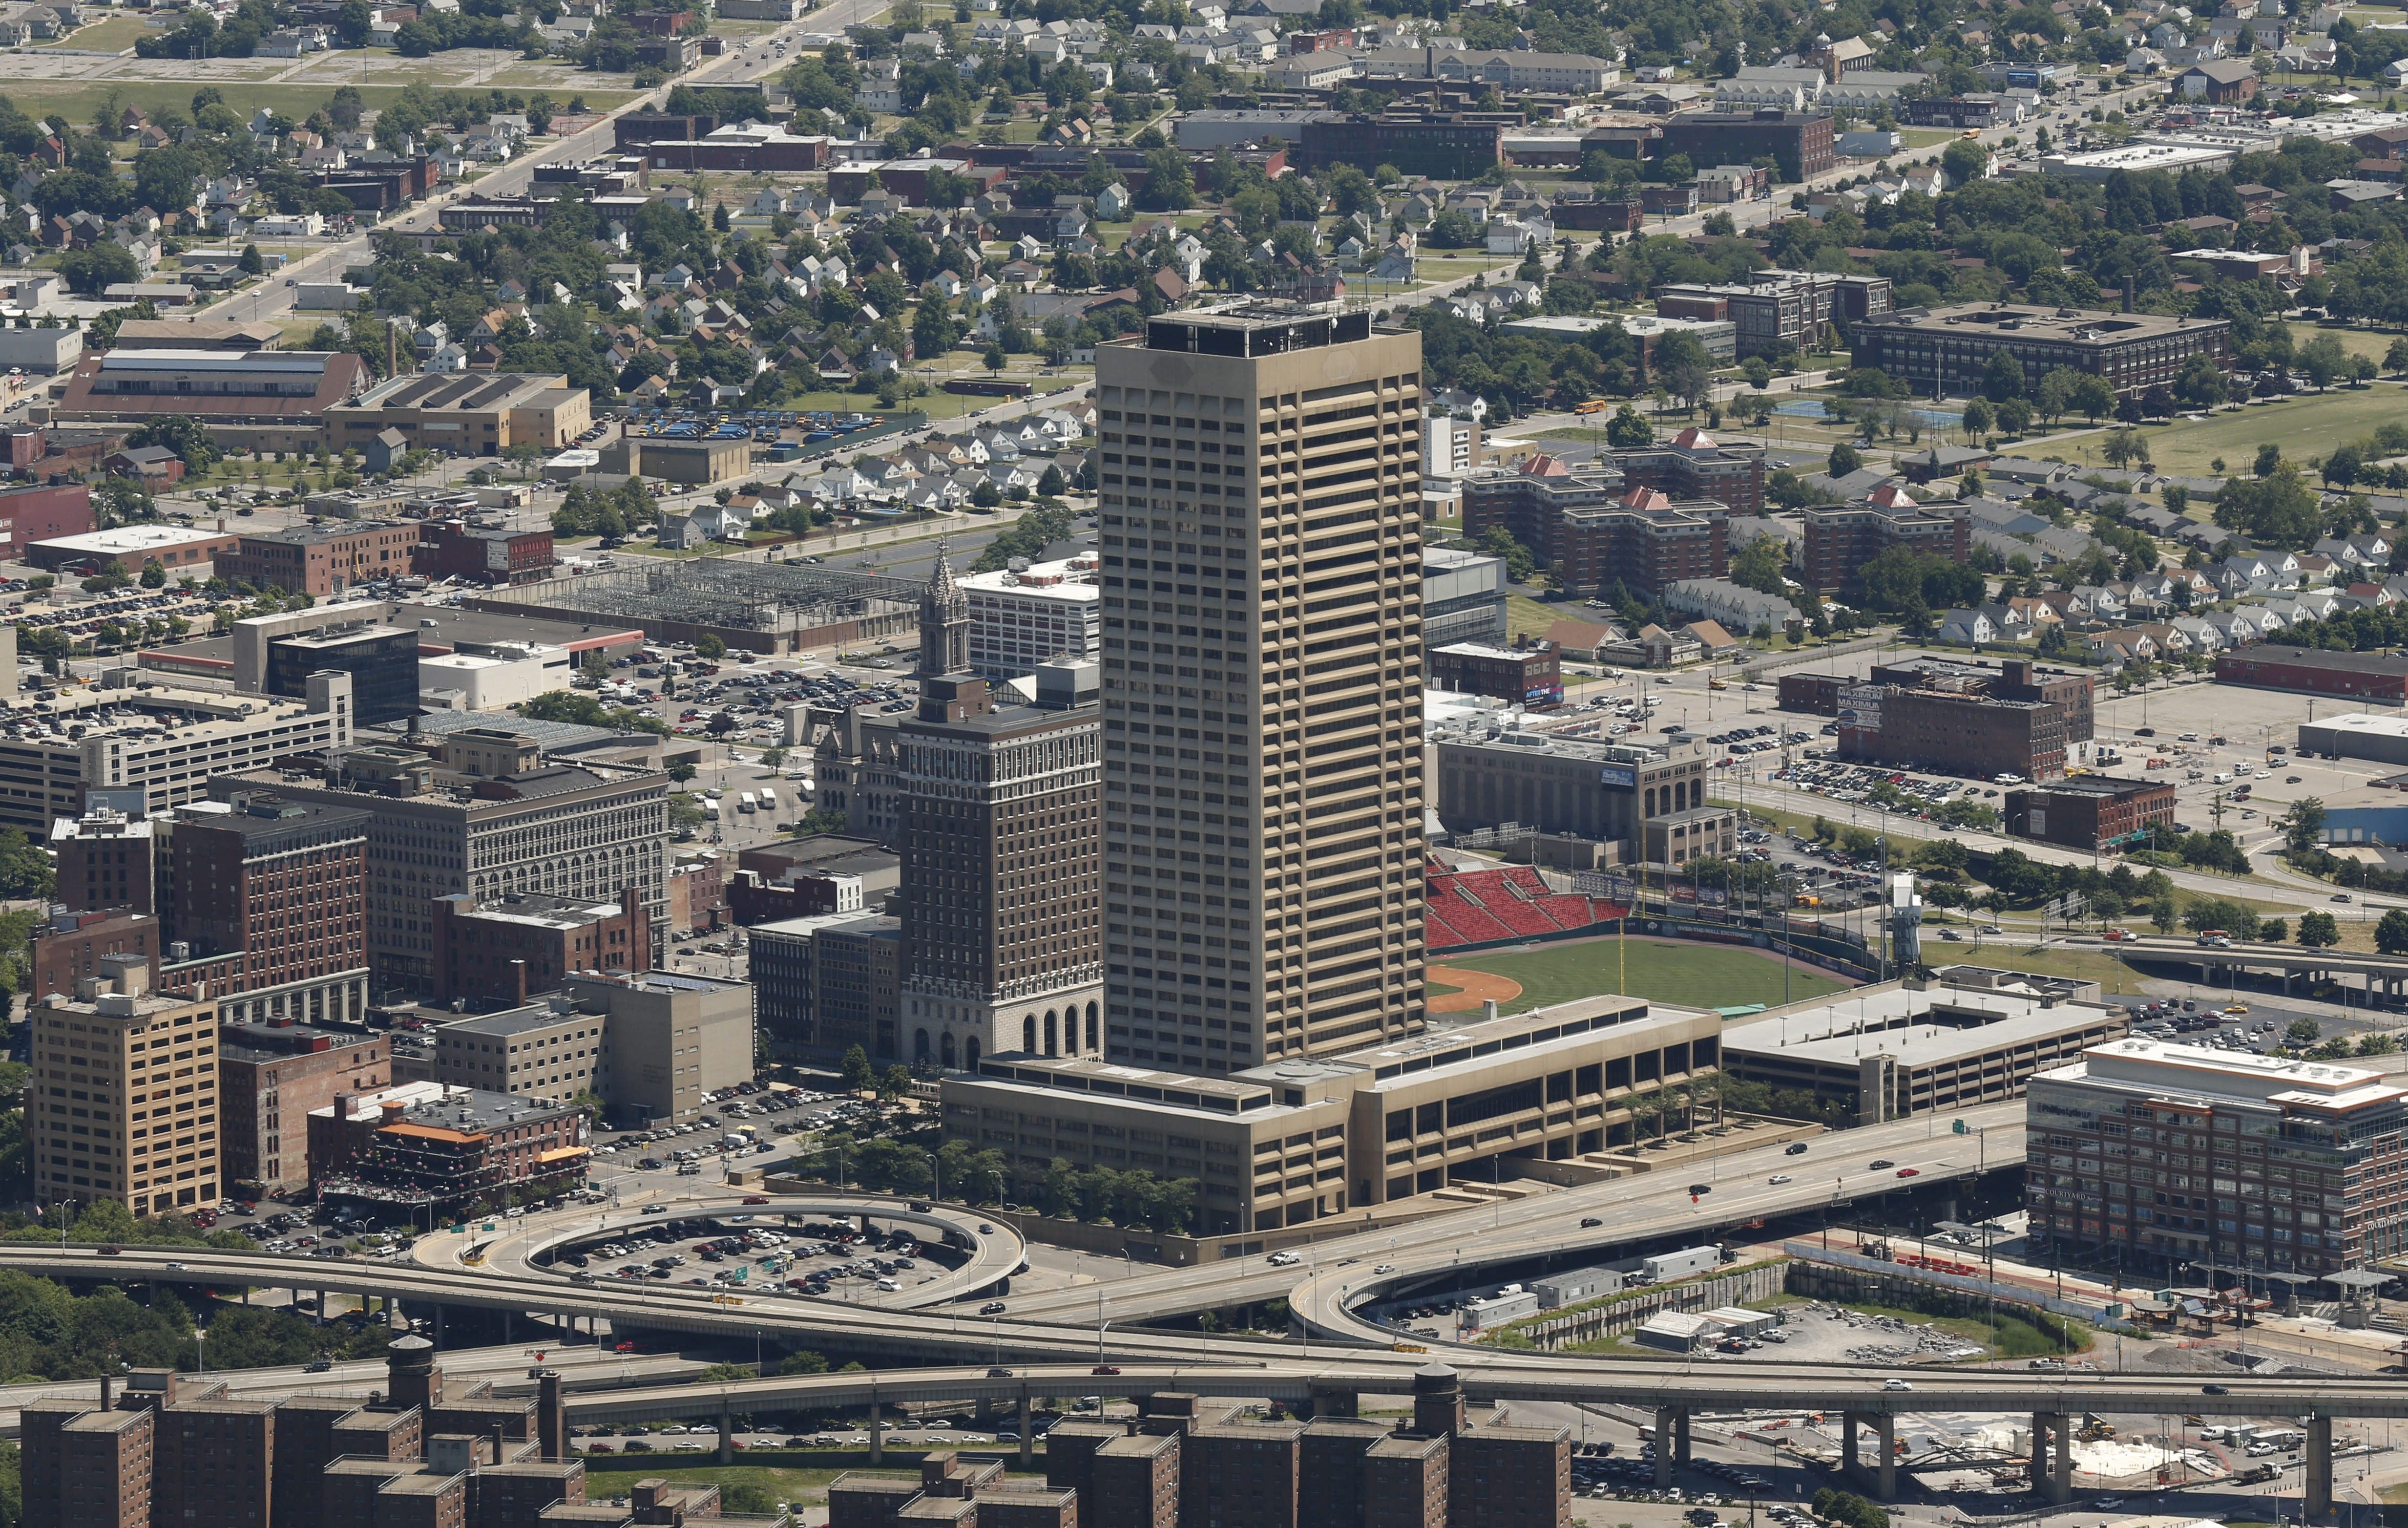 The City of Buffalo on Monday lowered the assessed value of One Seneca Tower by $2.7 million to $20.3 million.